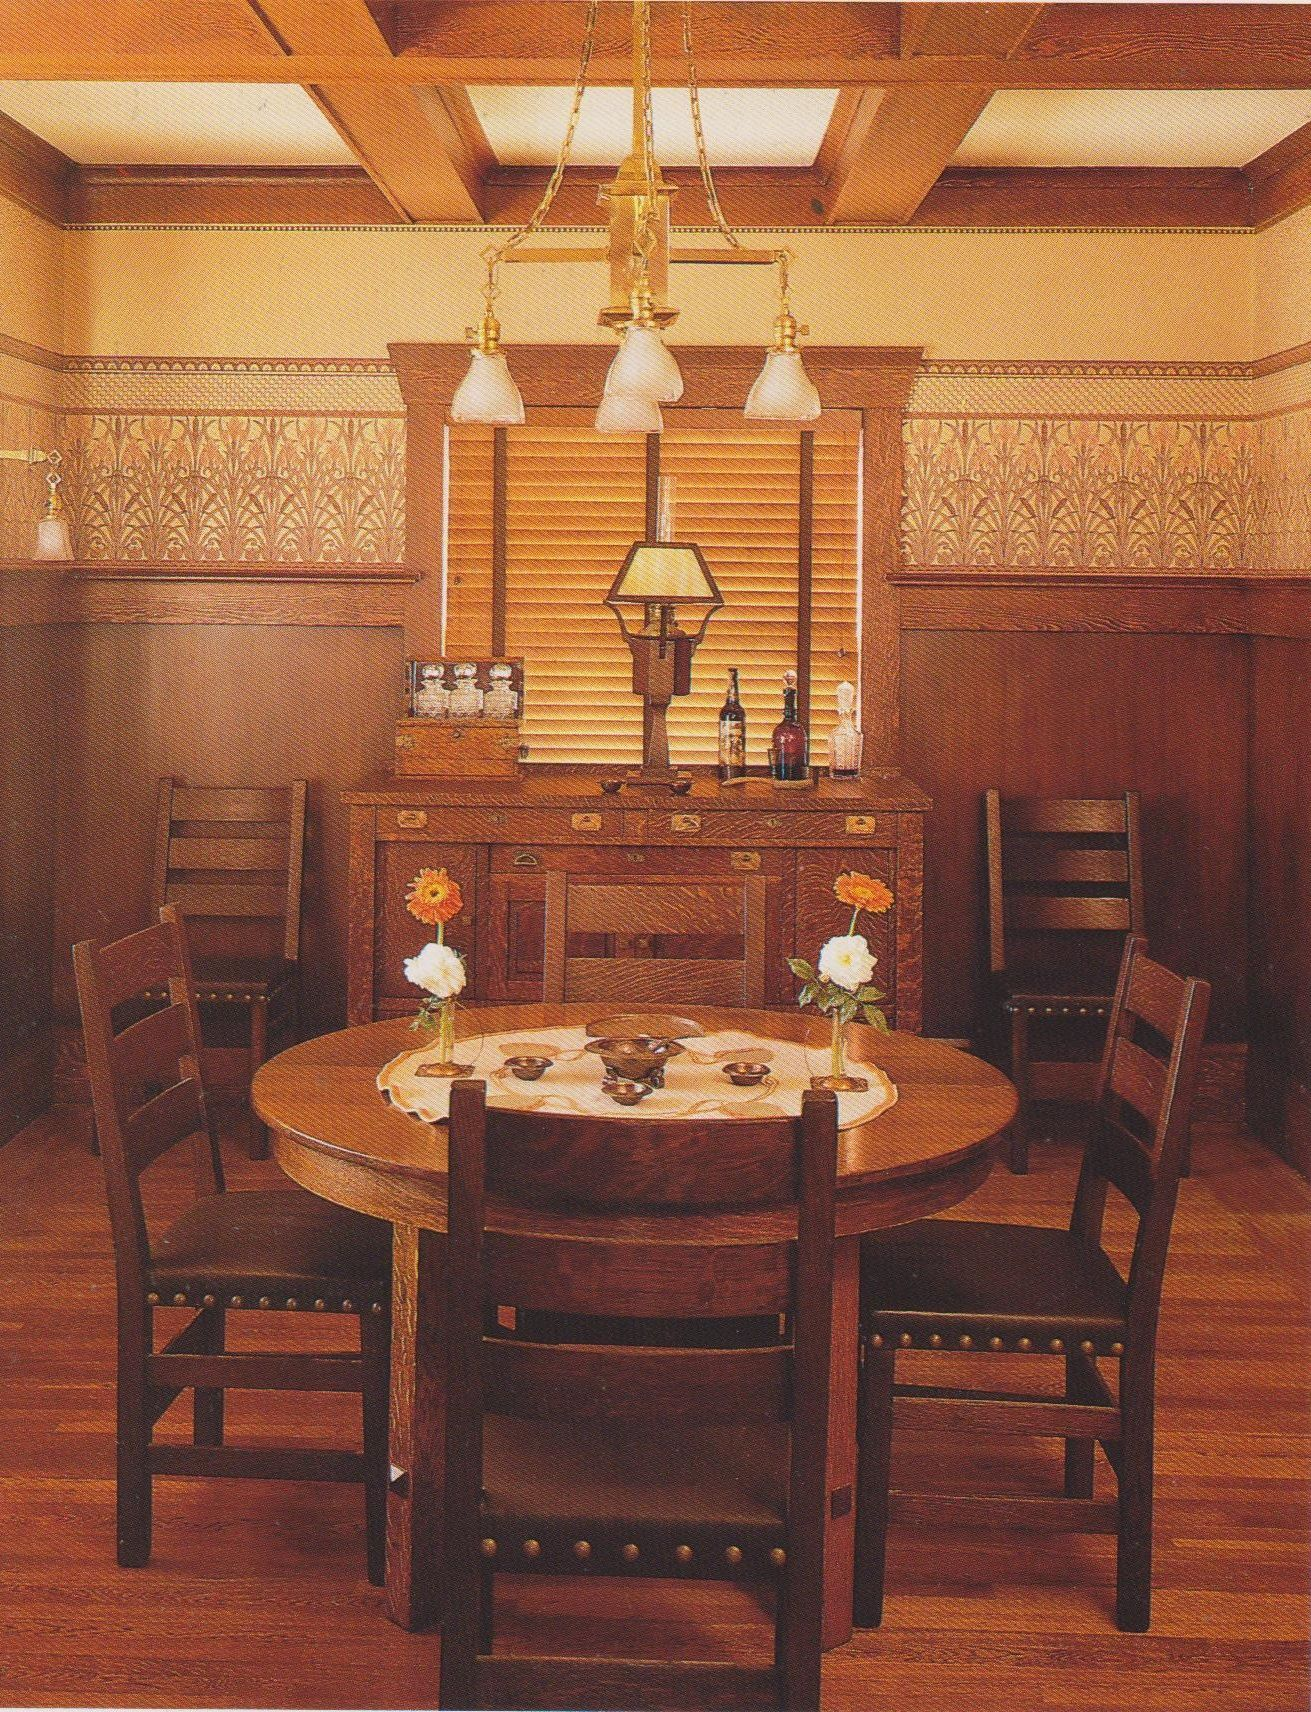 Arts And Crafts Movement - Craftsman Bungalow - Mission Style